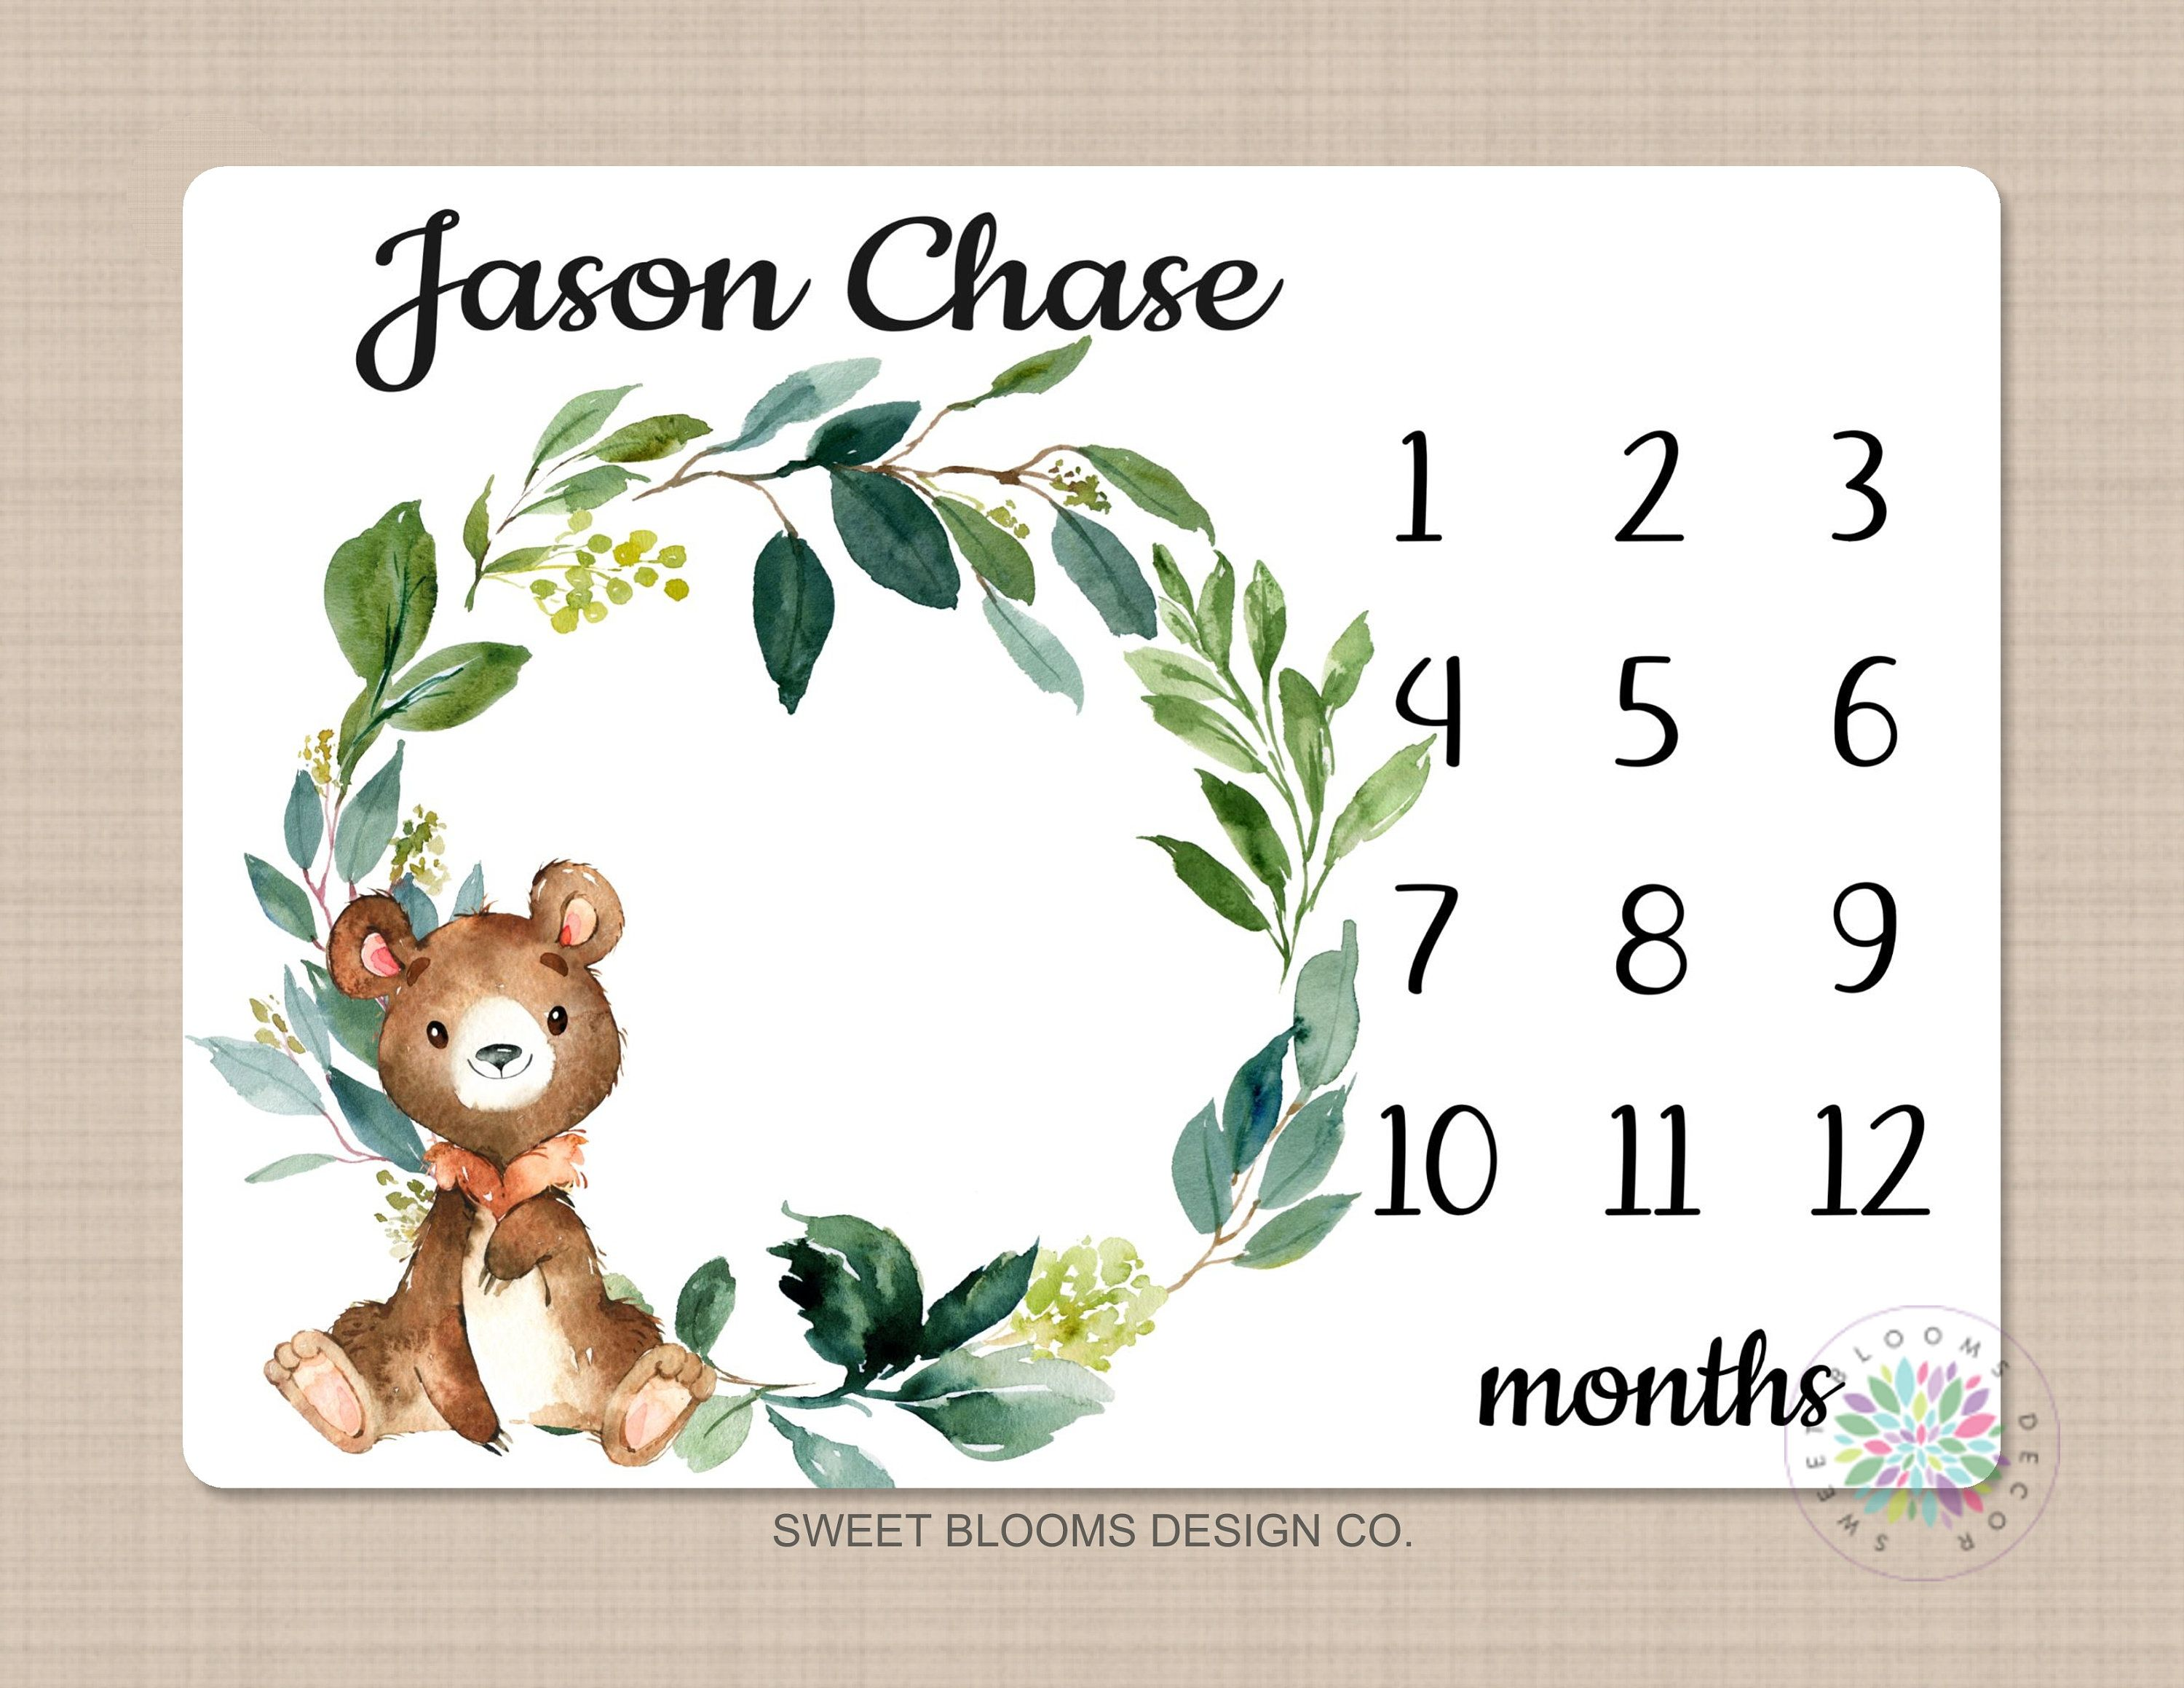 New Baby Gift Personalized Baby Blanket Custom Blanket Bear Baby Milestone Blanket Baby Shower Gift Baby Girl Monthly Growth Tracker